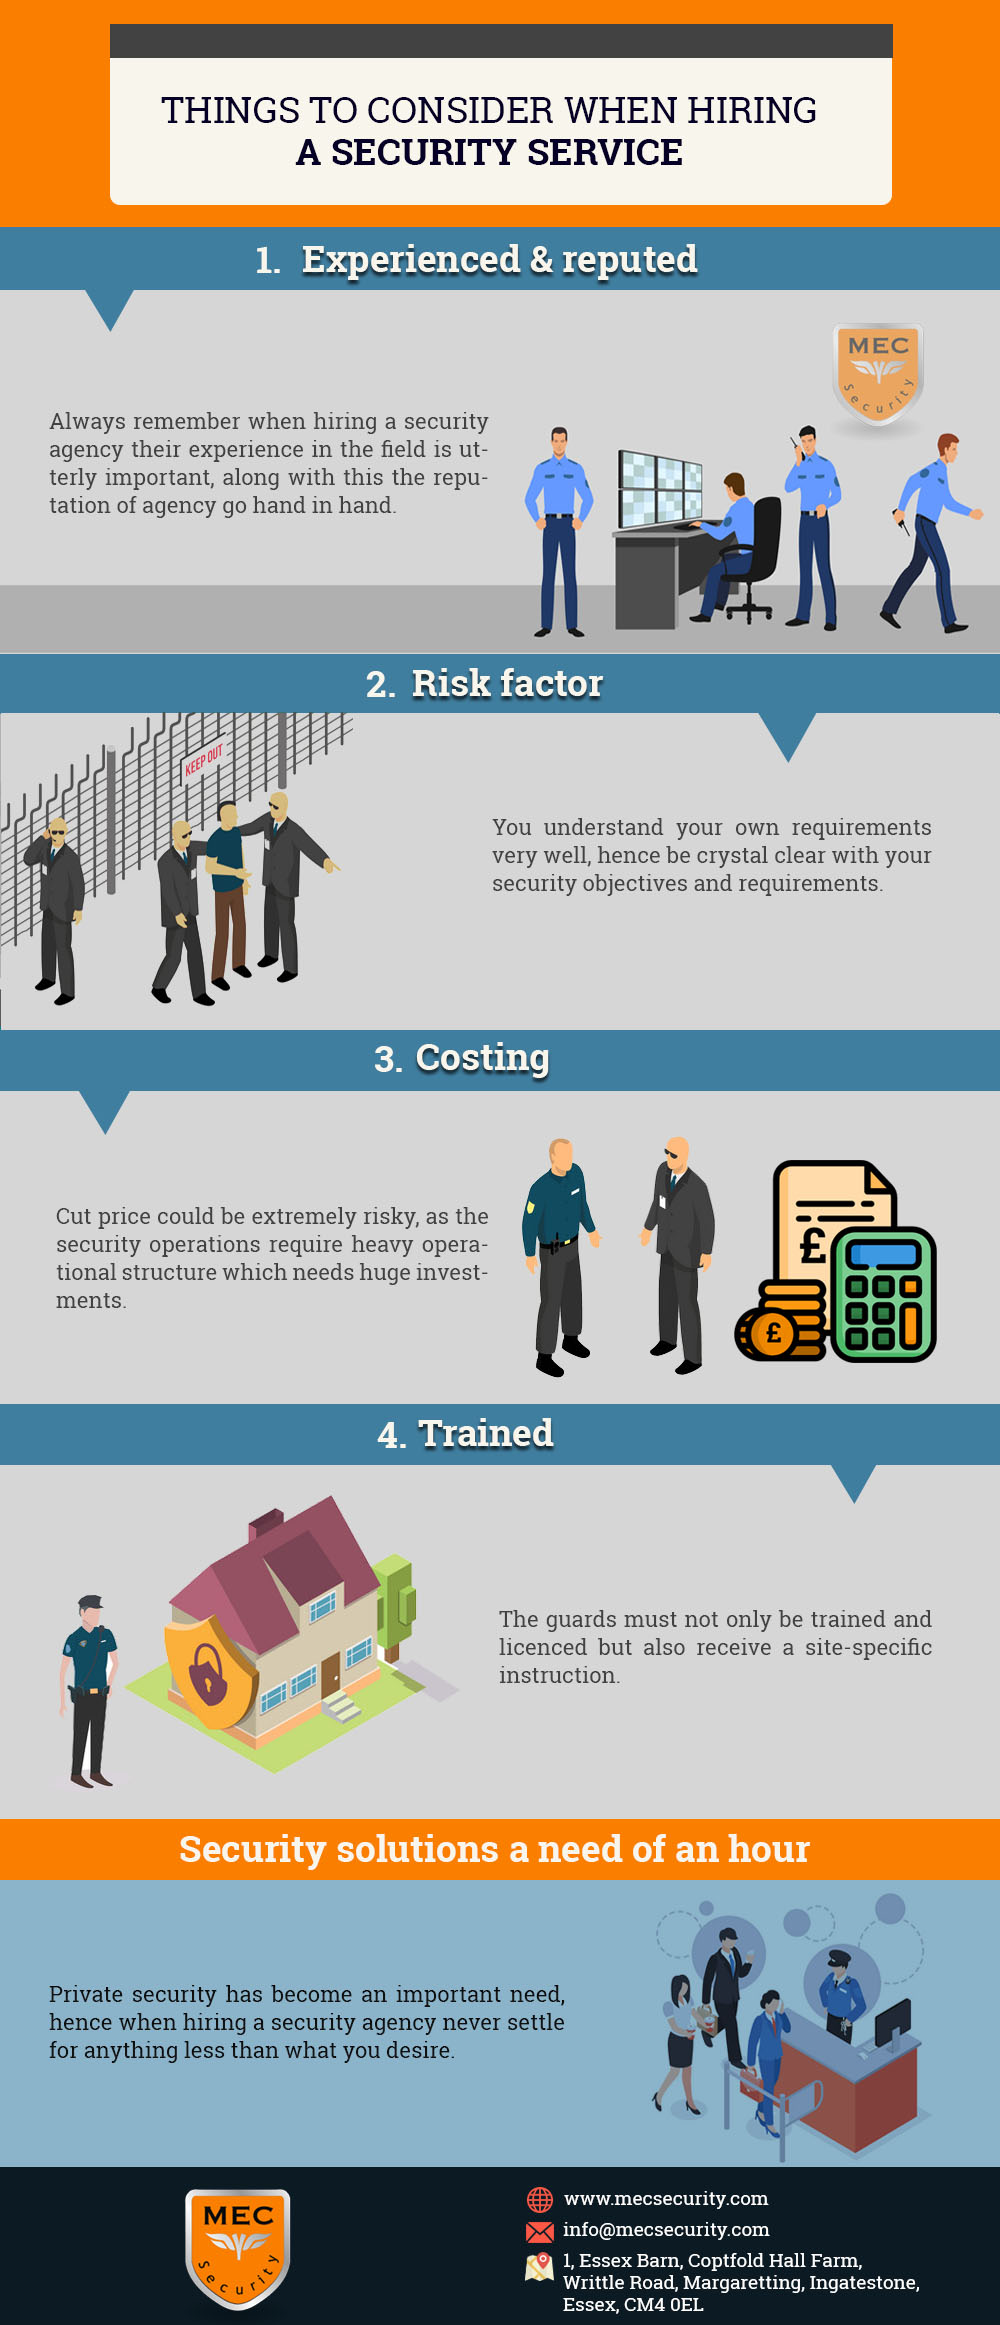 THINGS TO CONSIDER WHEN HIRING A SECURITY SERVICE